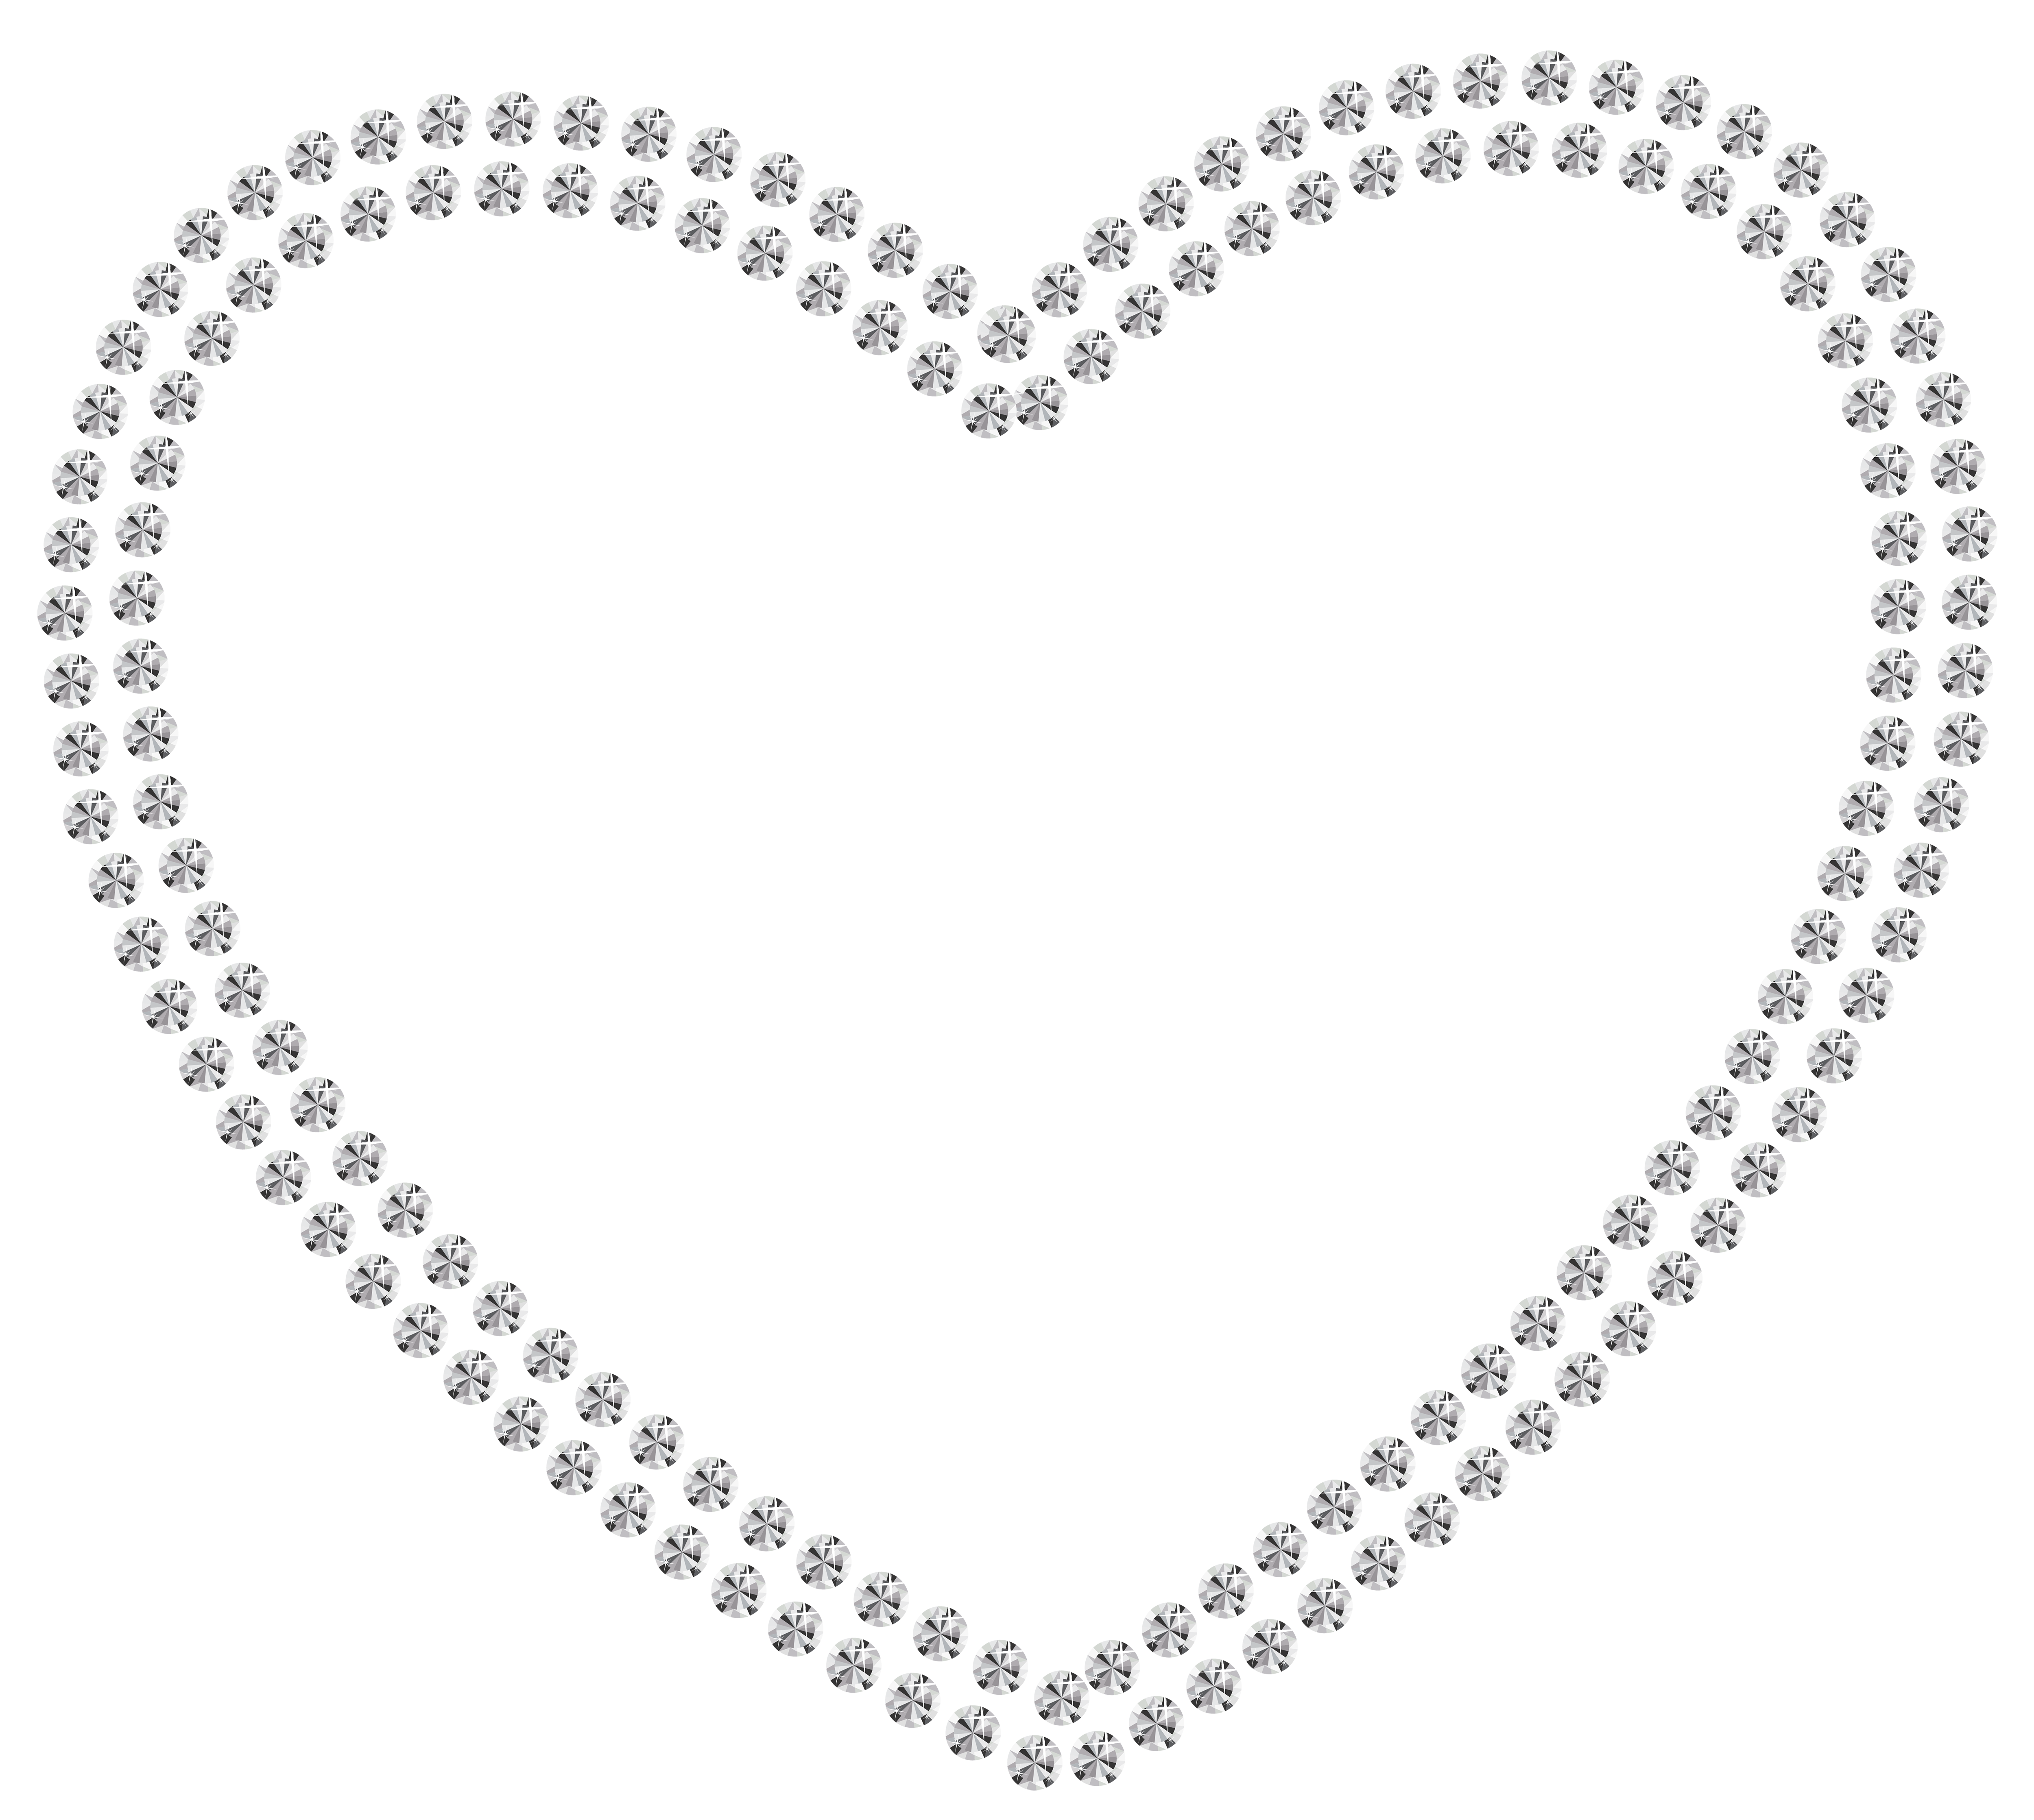 White heart png. Collection of clipart